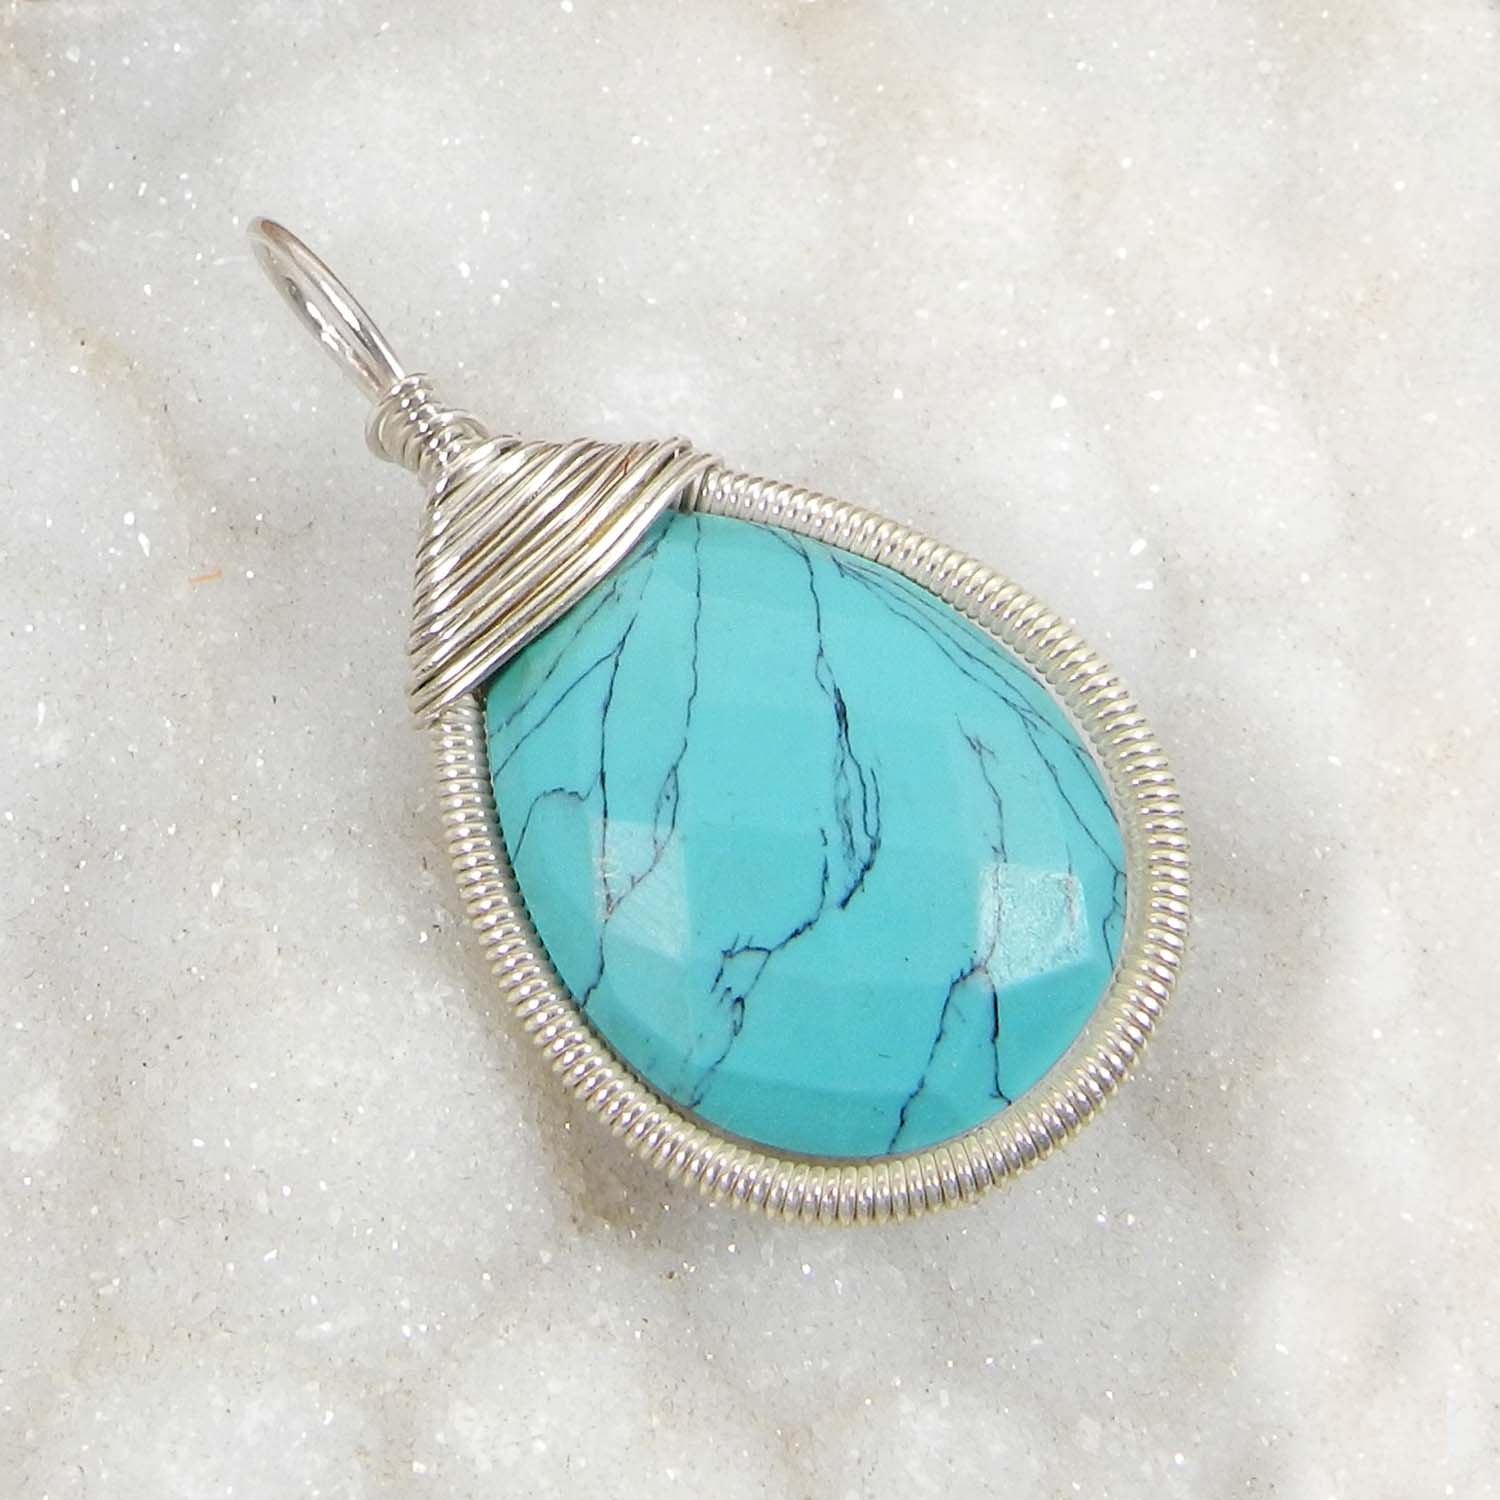 Bailey Synthetic Turquoise Silver Wire Wrapped Designer Pendant